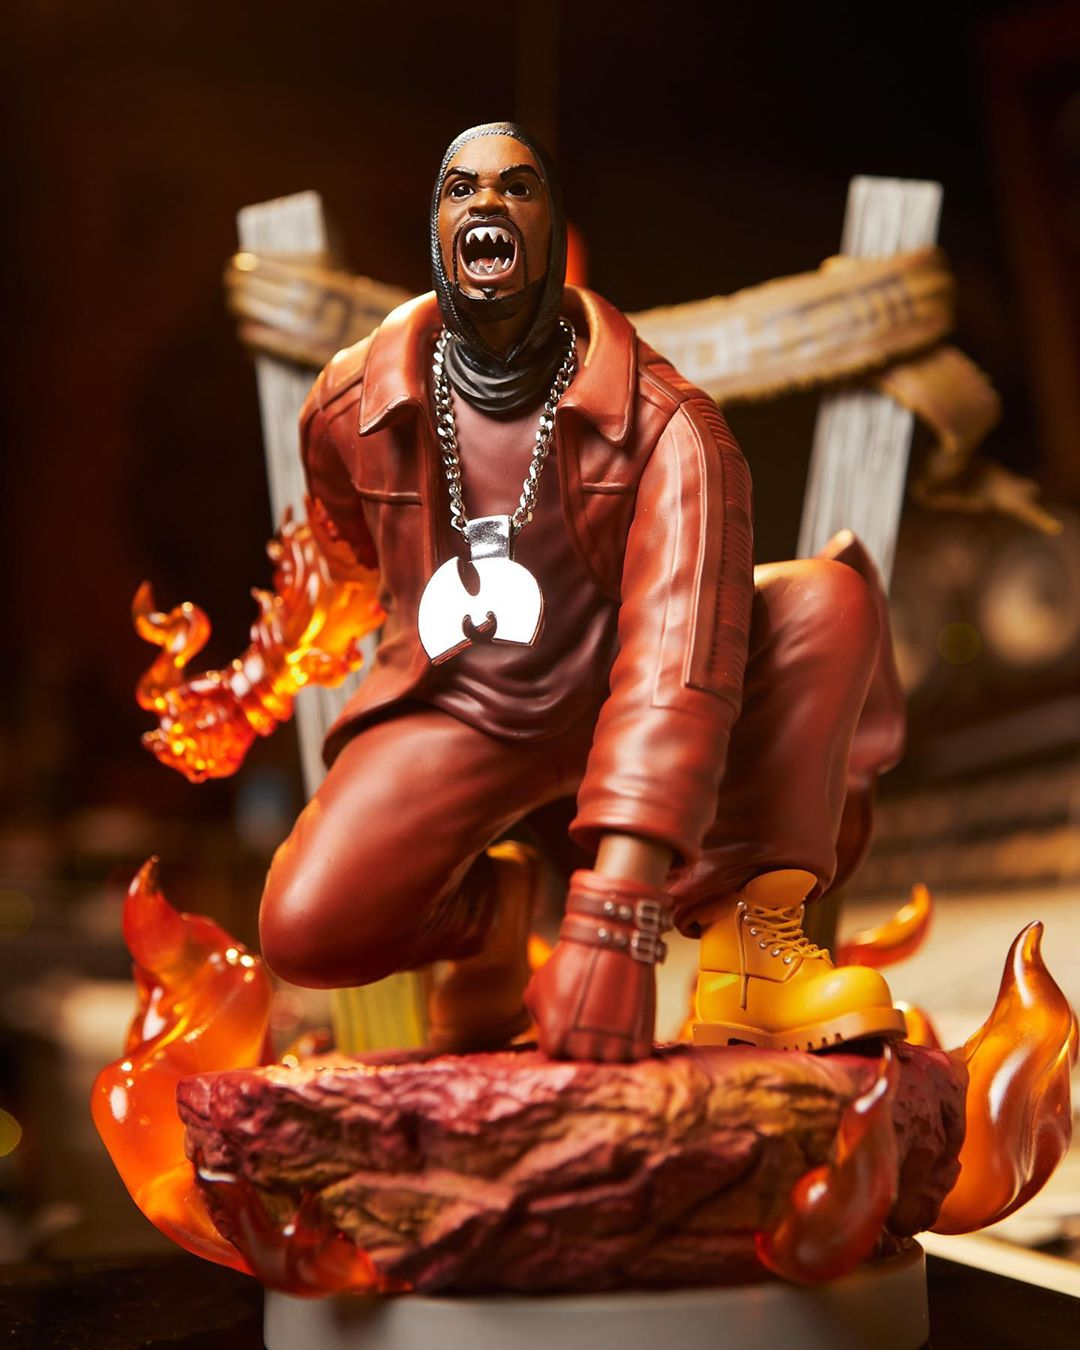 method man tical 2000 judgment day statue